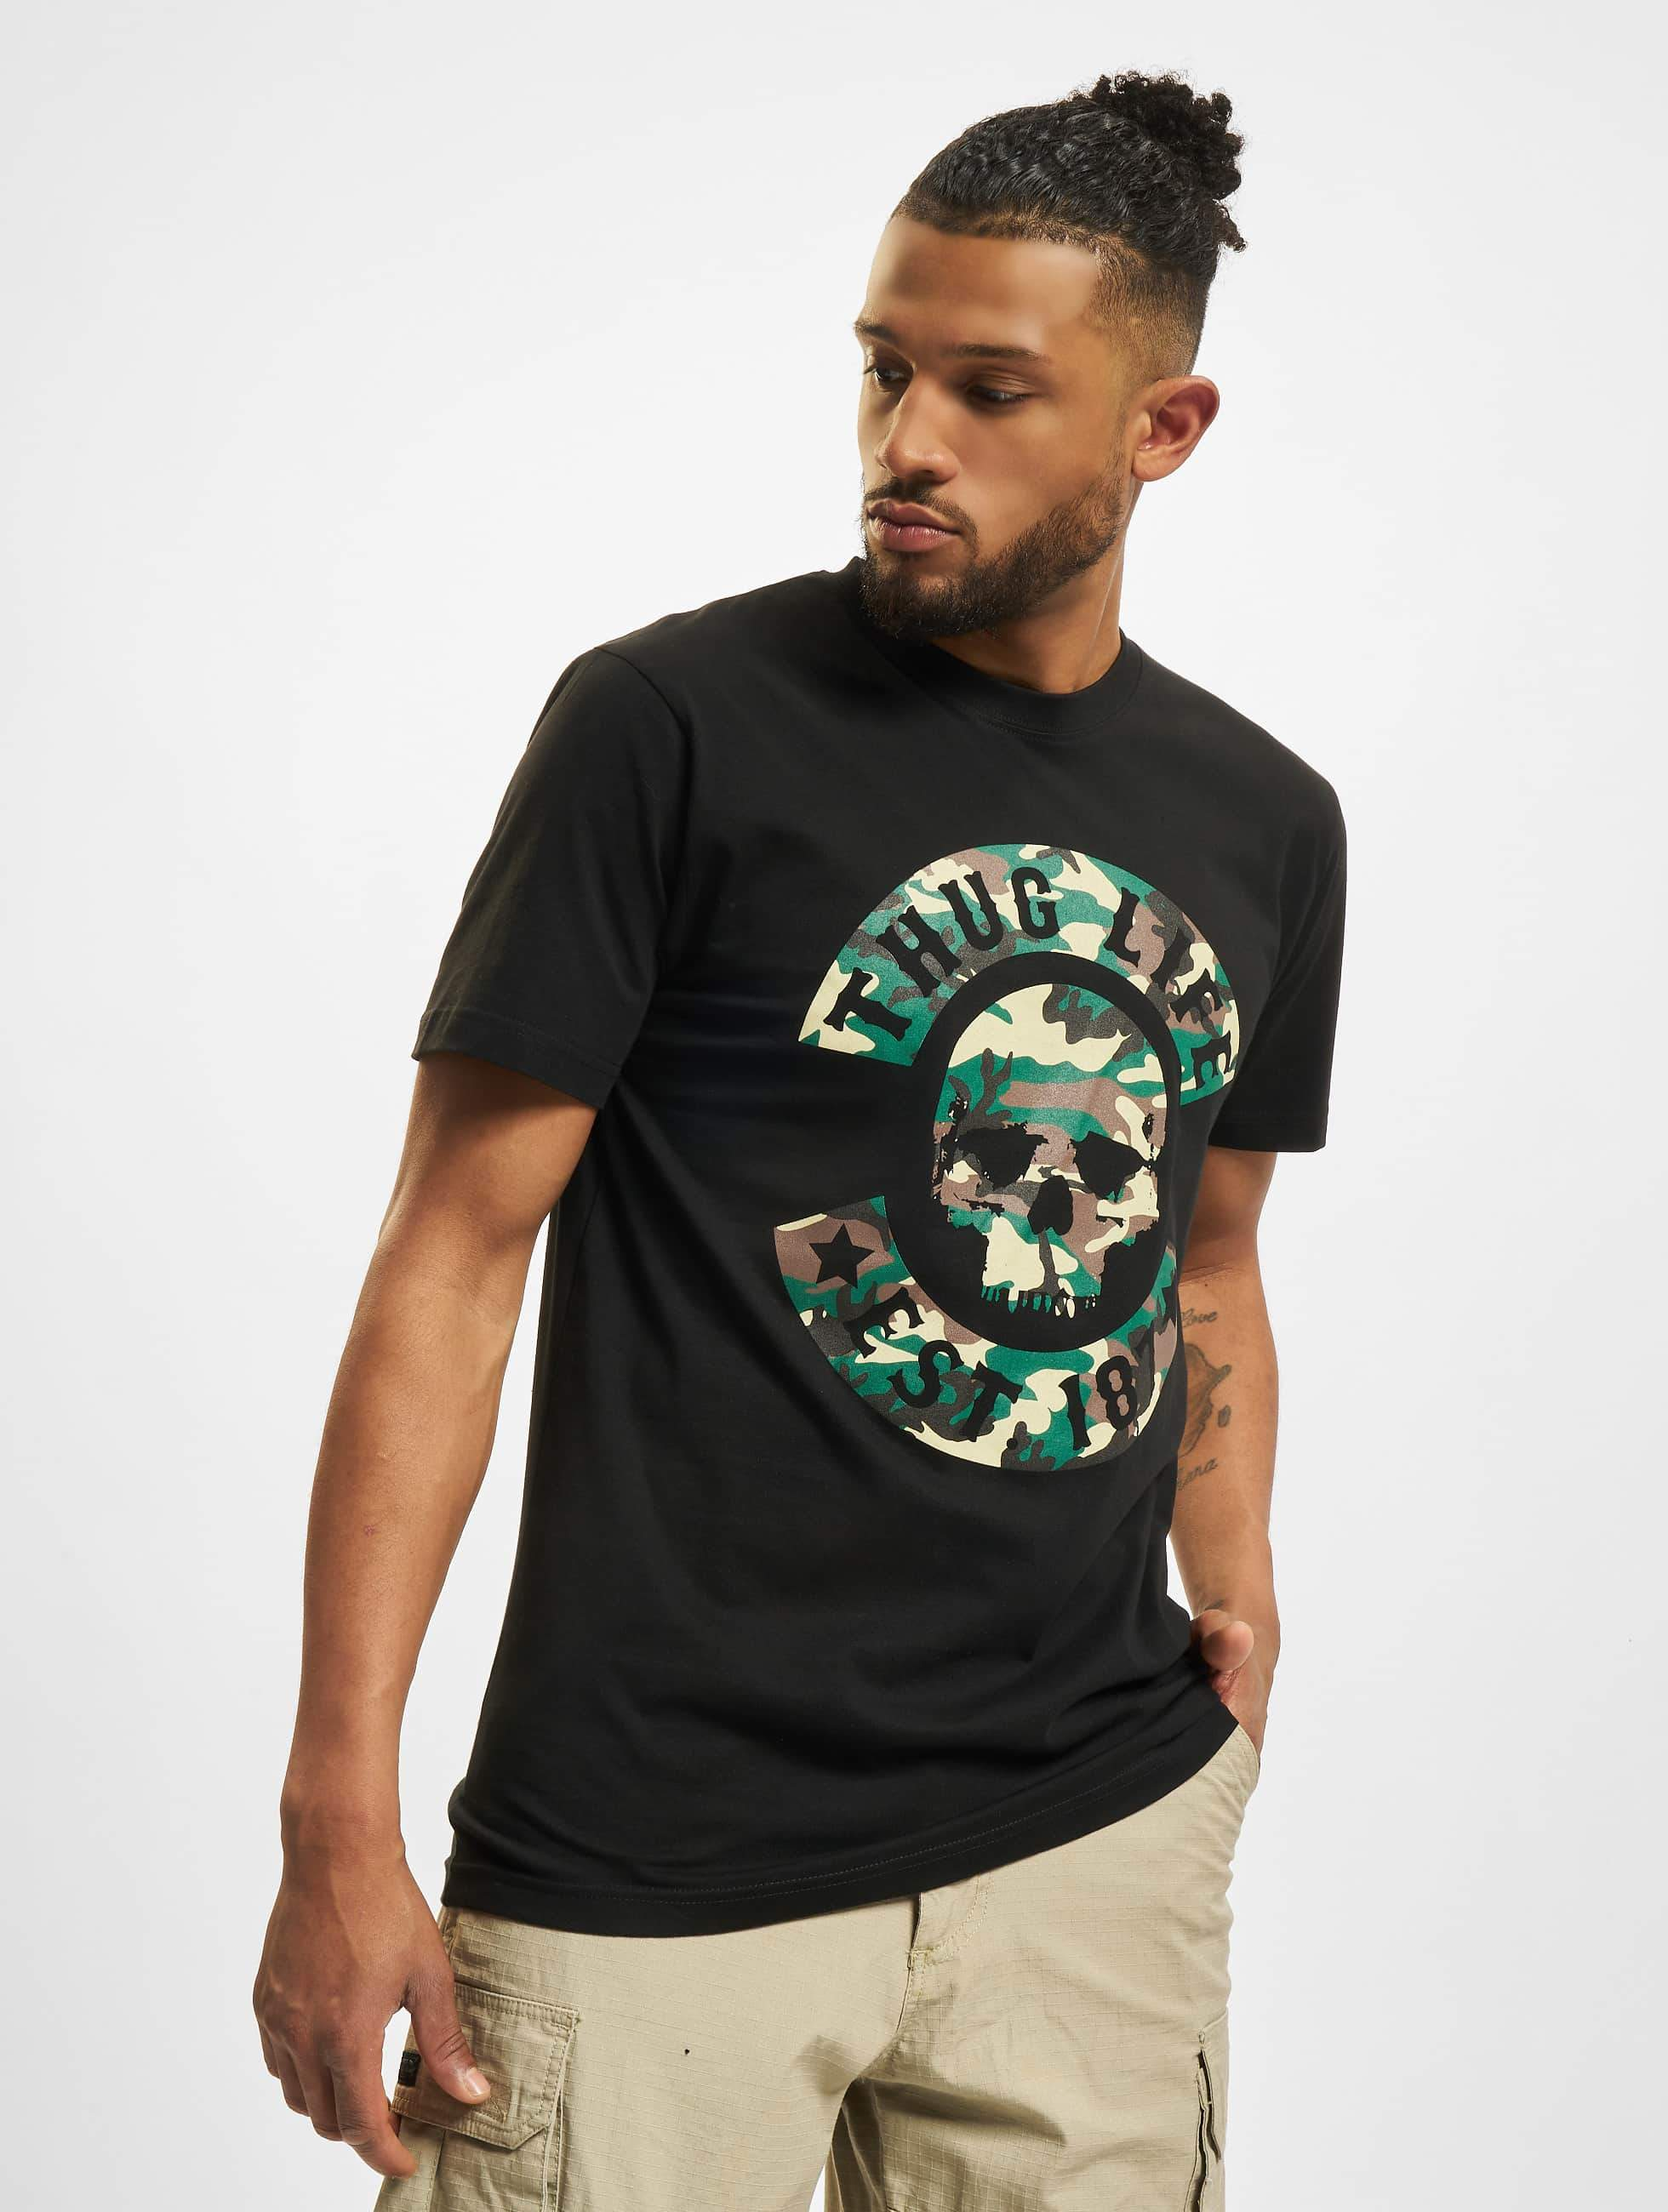 Thug Life / T-Shirt B. Camo in black S